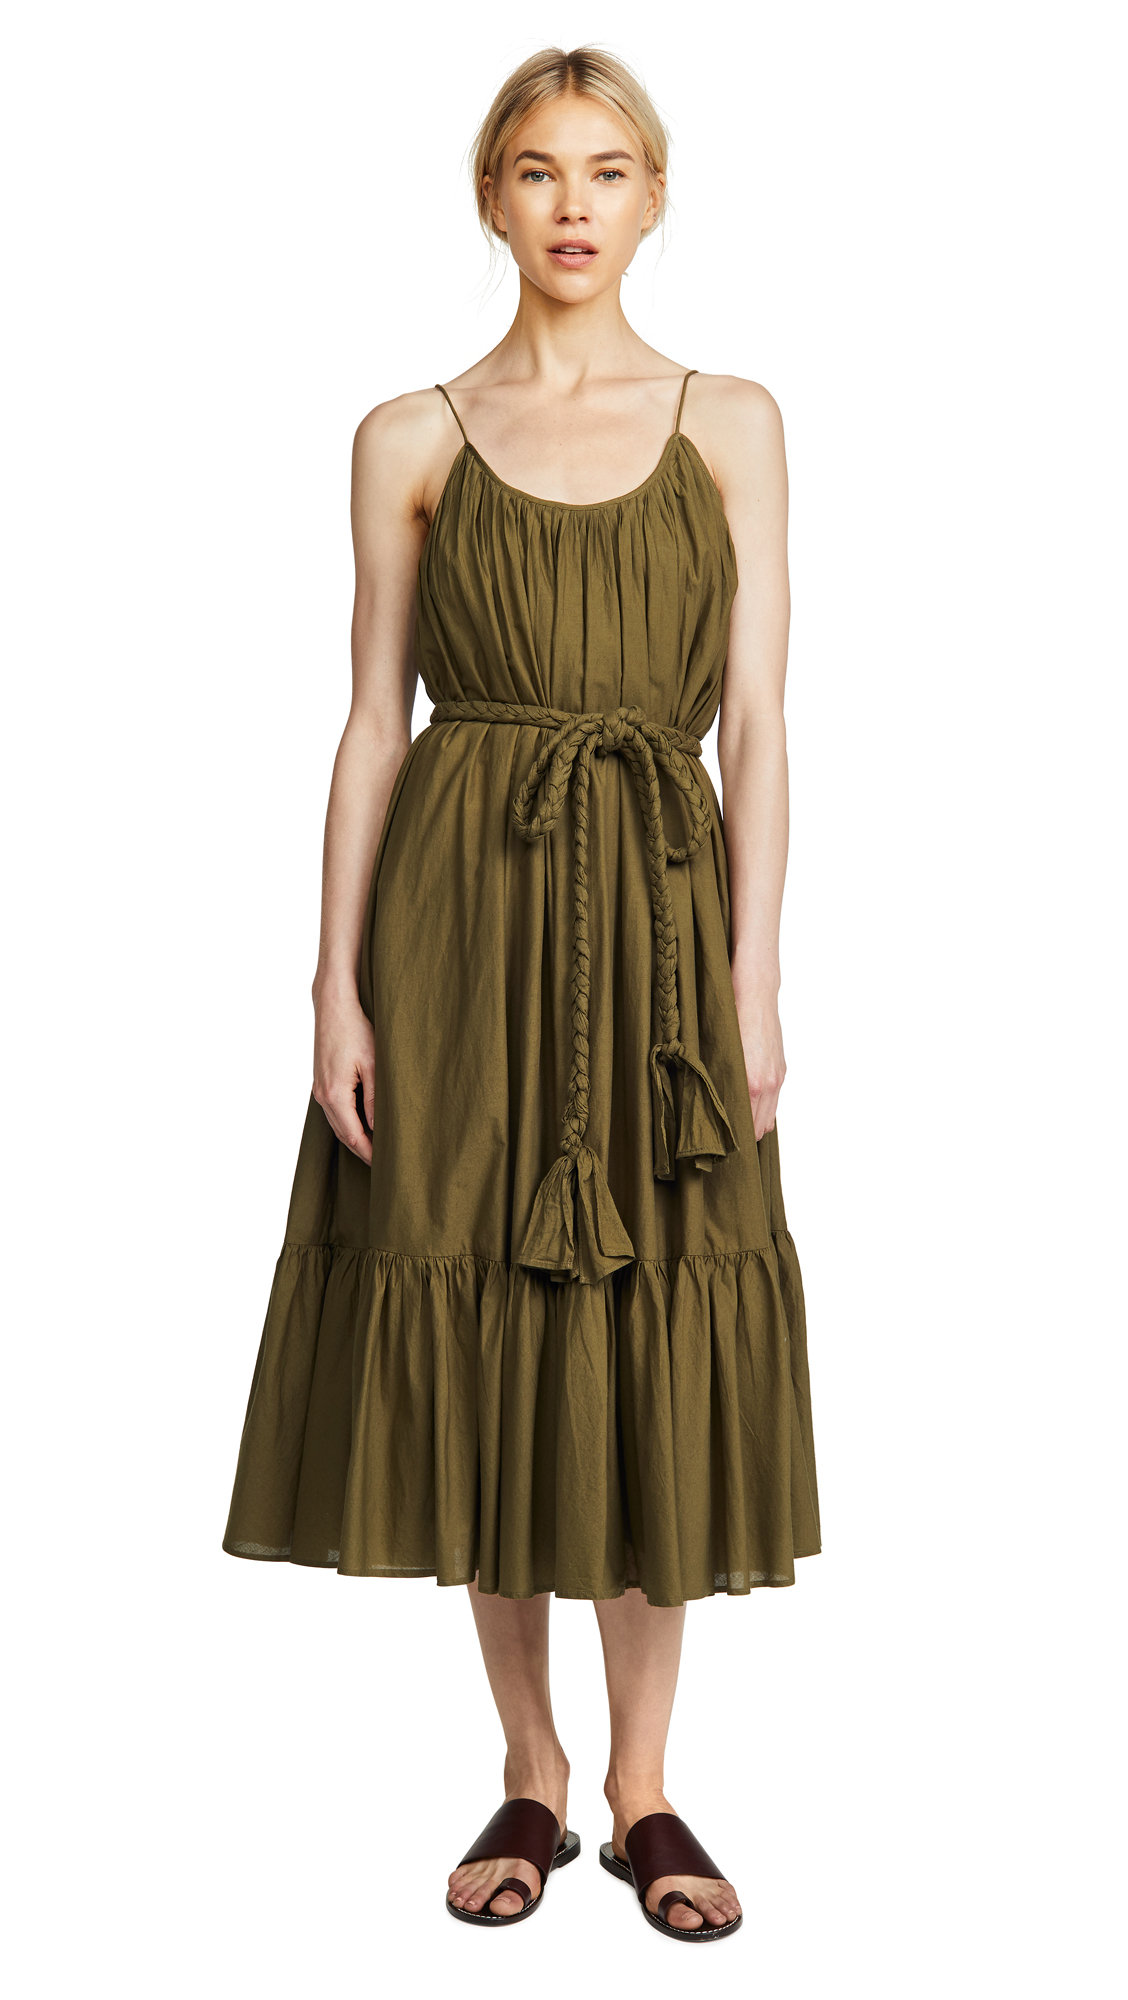 RHODE RESORT Lea Belted Pleated Cotton Midi Dress in Army Green